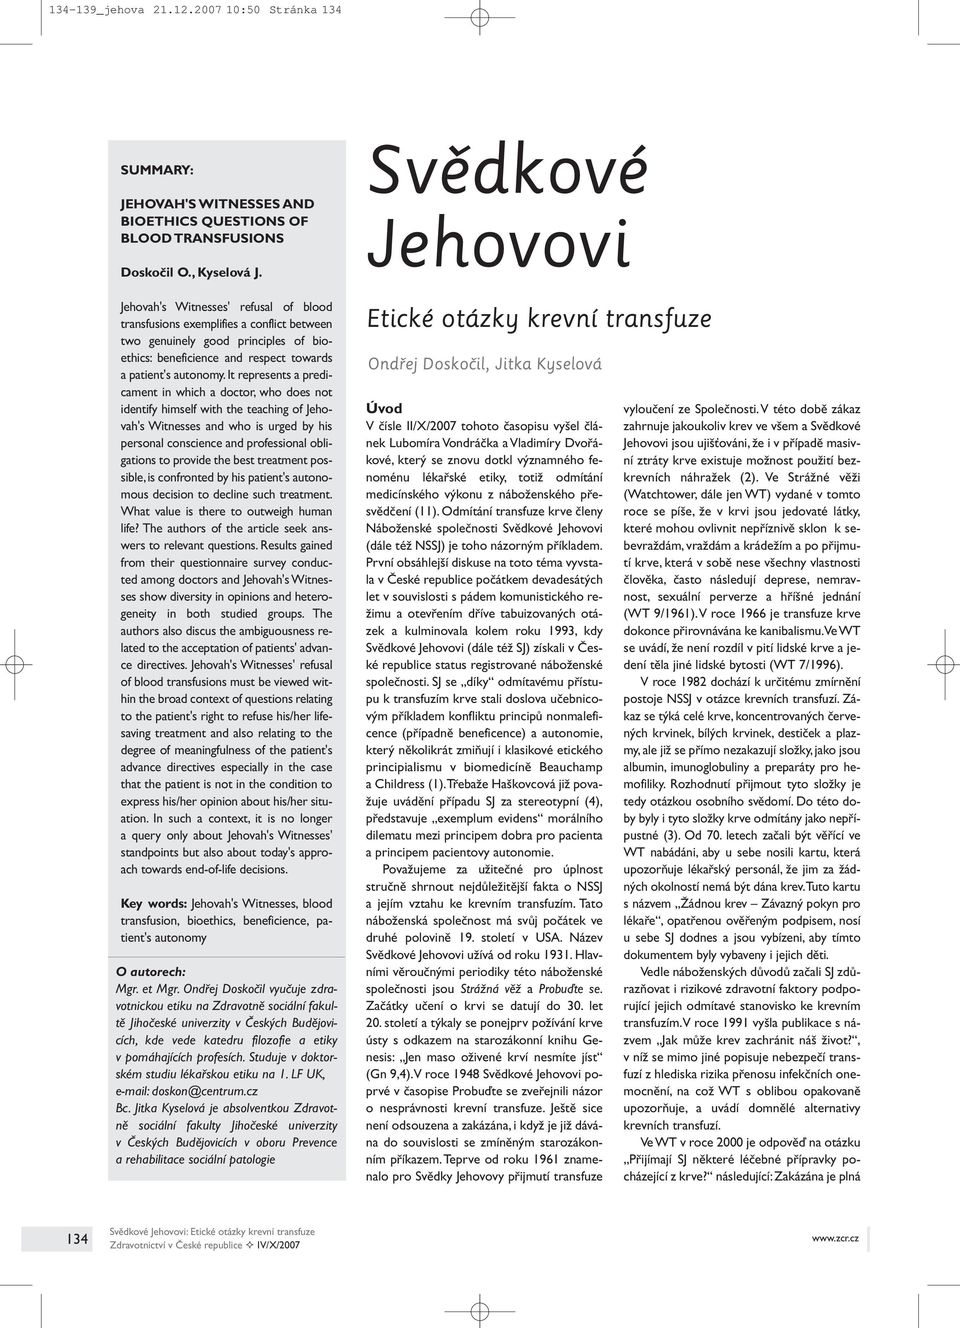 It represents a predicament in which a doctor, who does not identify himself with the teaching of Jehovah's Witnesses and who is urged by his personal conscience and professional obligations to